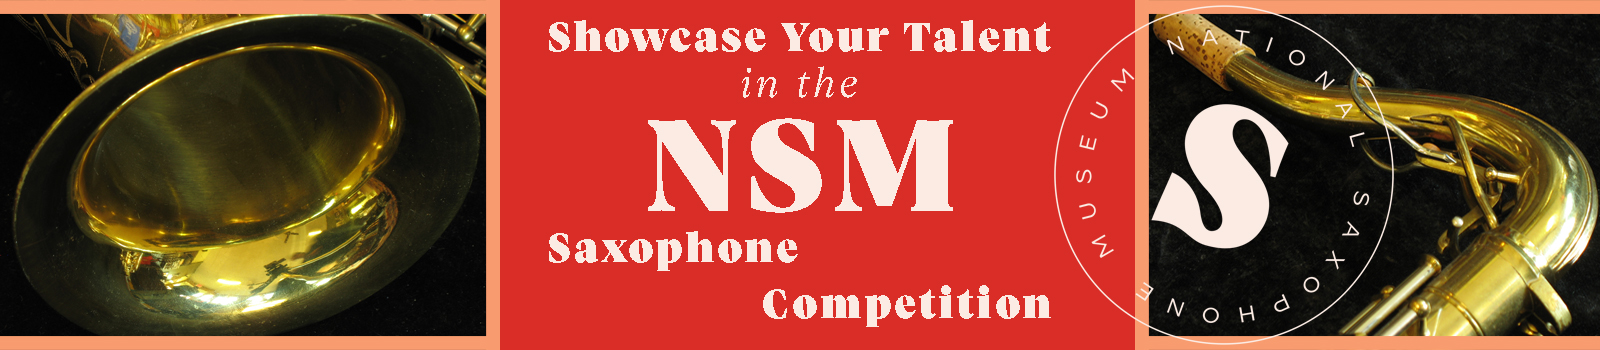 Showcase Your Talent in the NSM Saxophone Museum Header